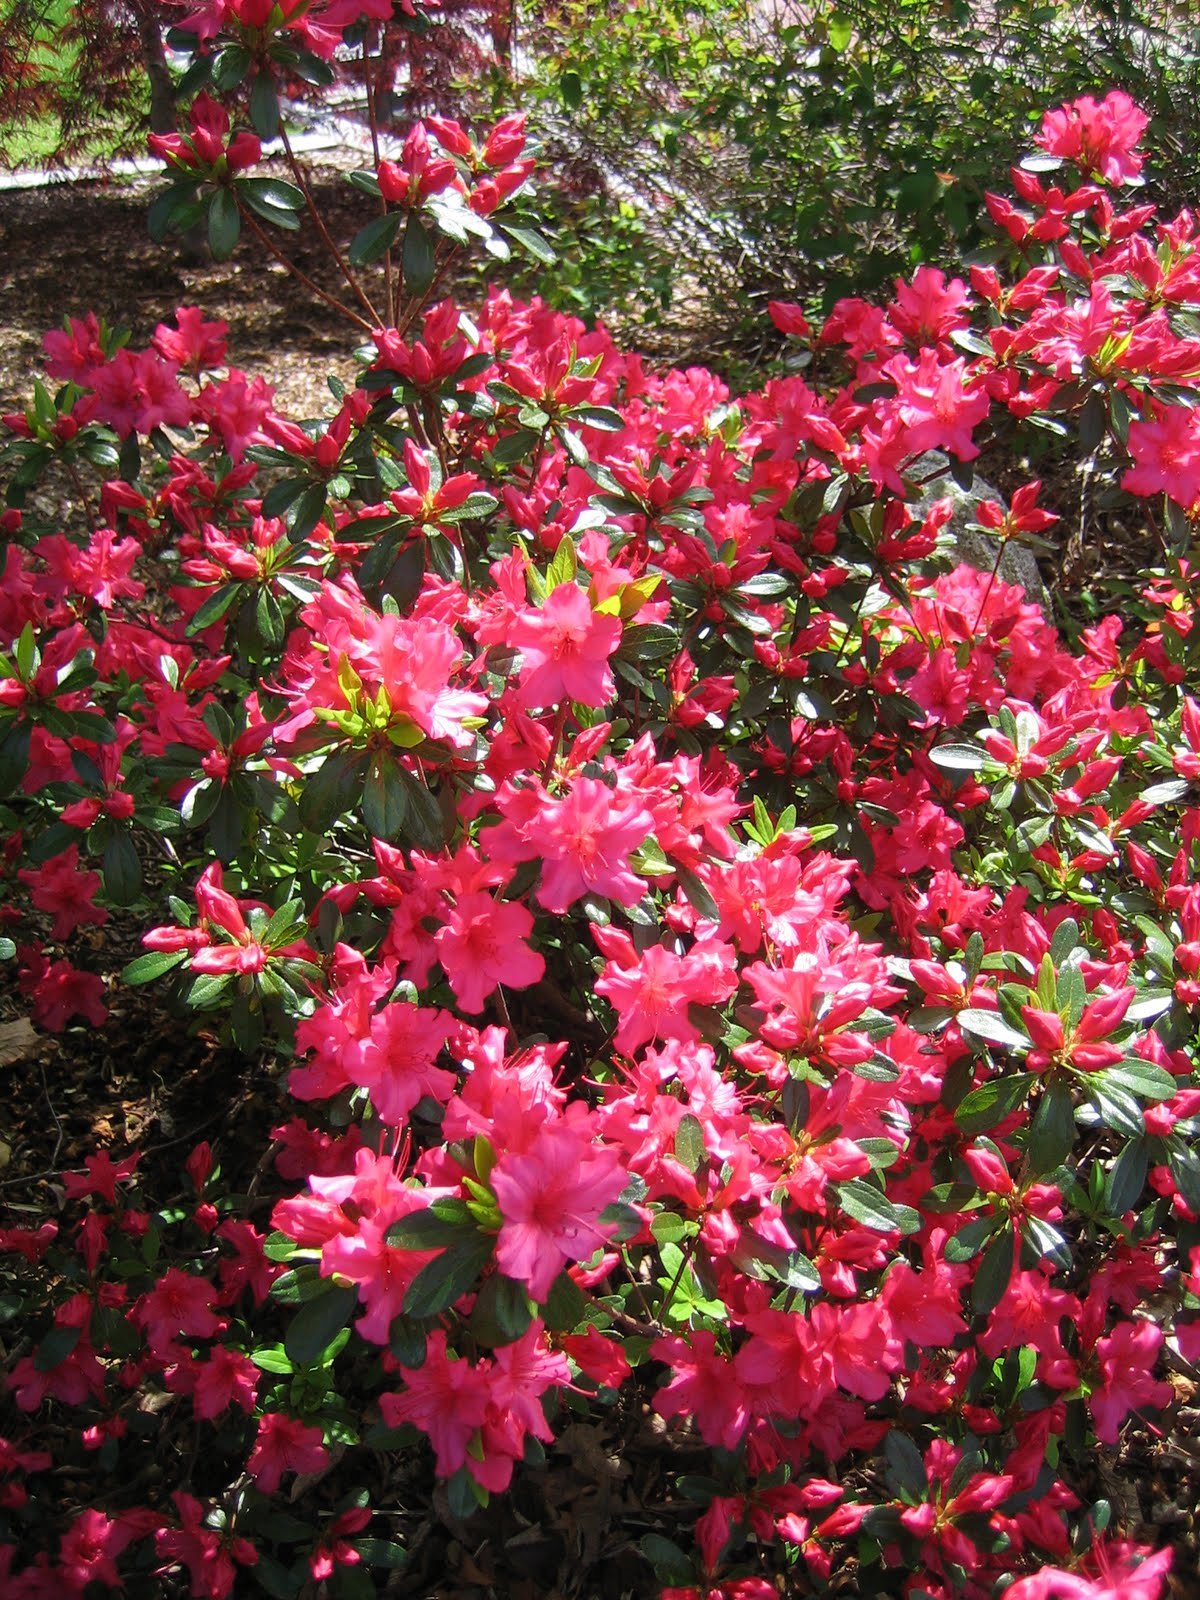 rhododendron mature singles The leaves of this handsome asian evergreen shrub are resistant to leaf spot they are gray-green when they first open, and later mature to a dark green or blue-green color.